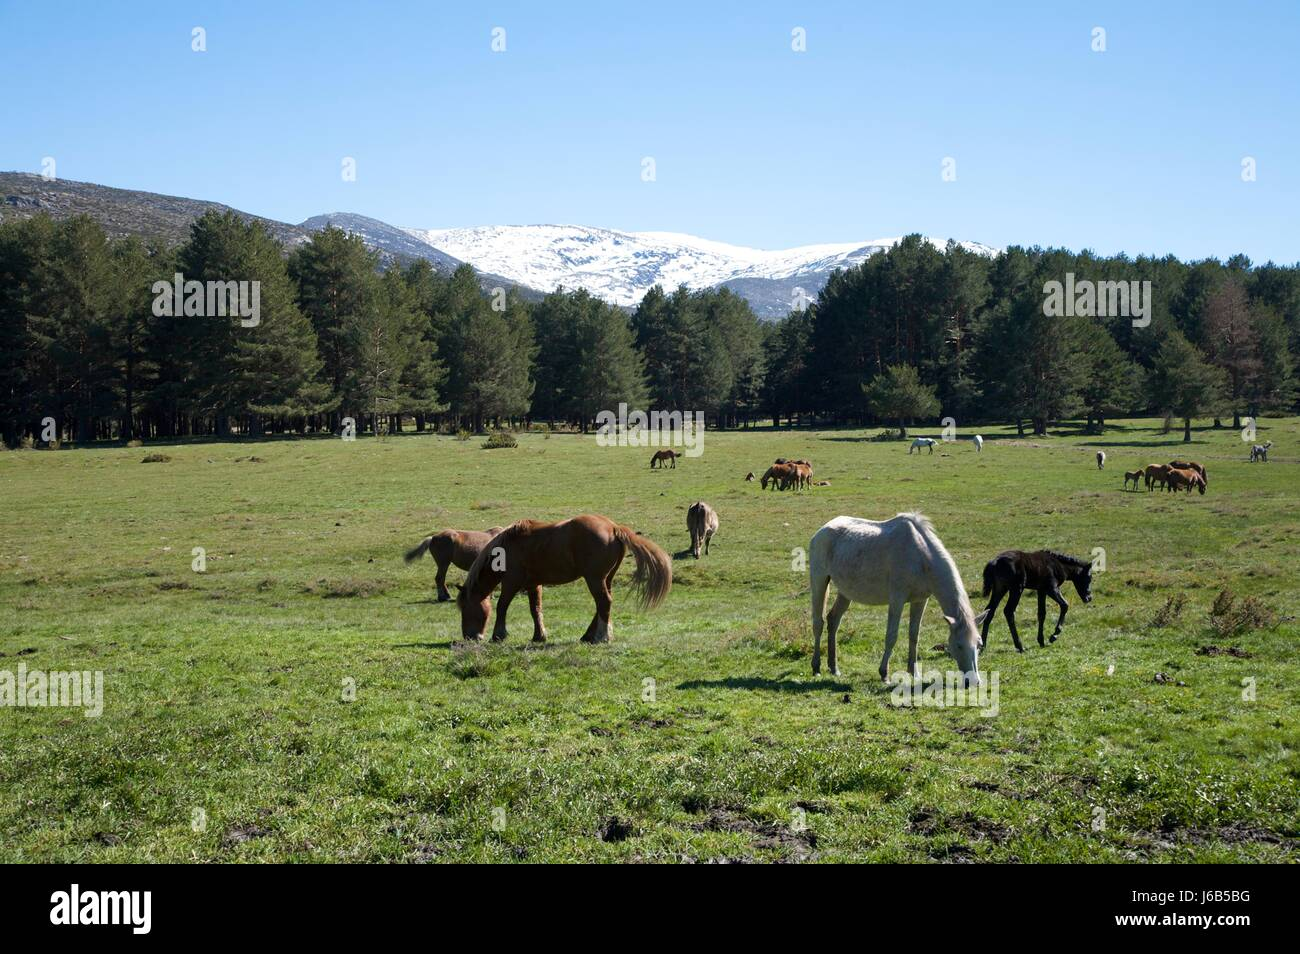 Horse Animal Spain Wildlife Landscape Scenery Countryside